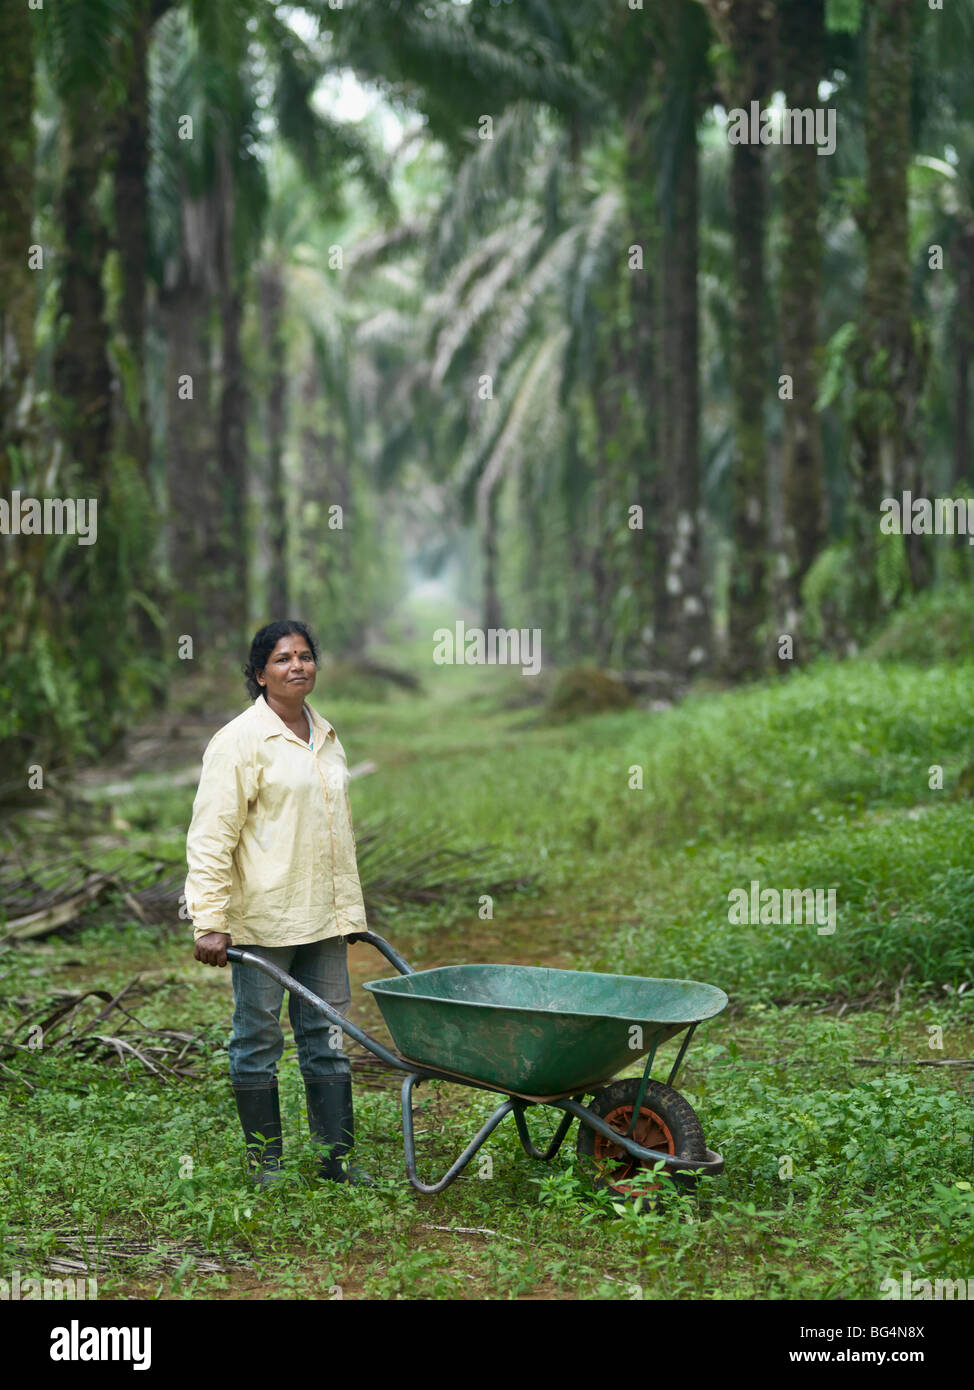 A portrait of a farm worker on a palm tree plantation with a wheelbarrow in tow. - Stock Image